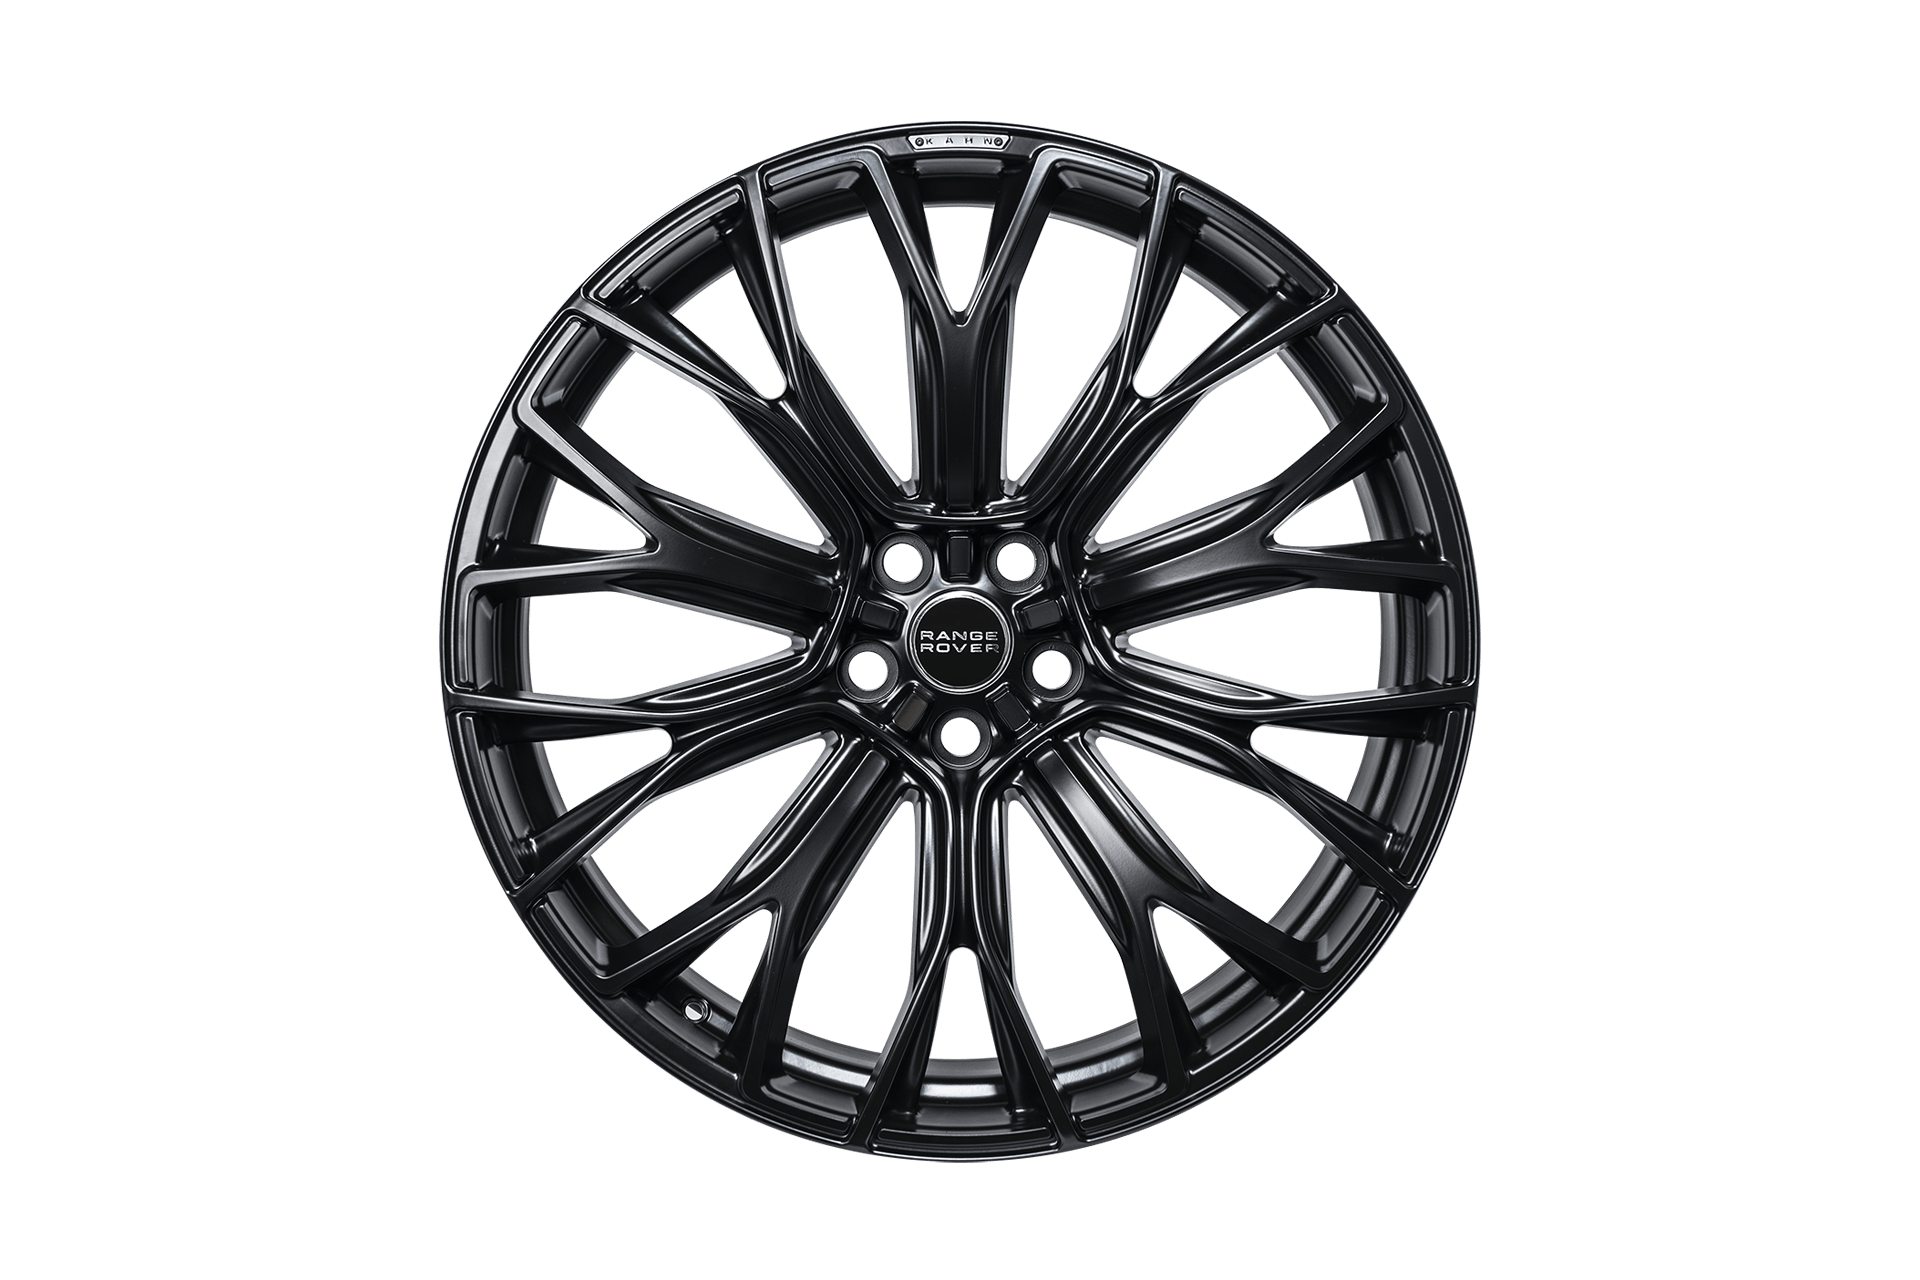 Land Rover Discovery (2017-Present) Type 25 Rs-Forged Alloy Wheels by Kahn - Image 3204